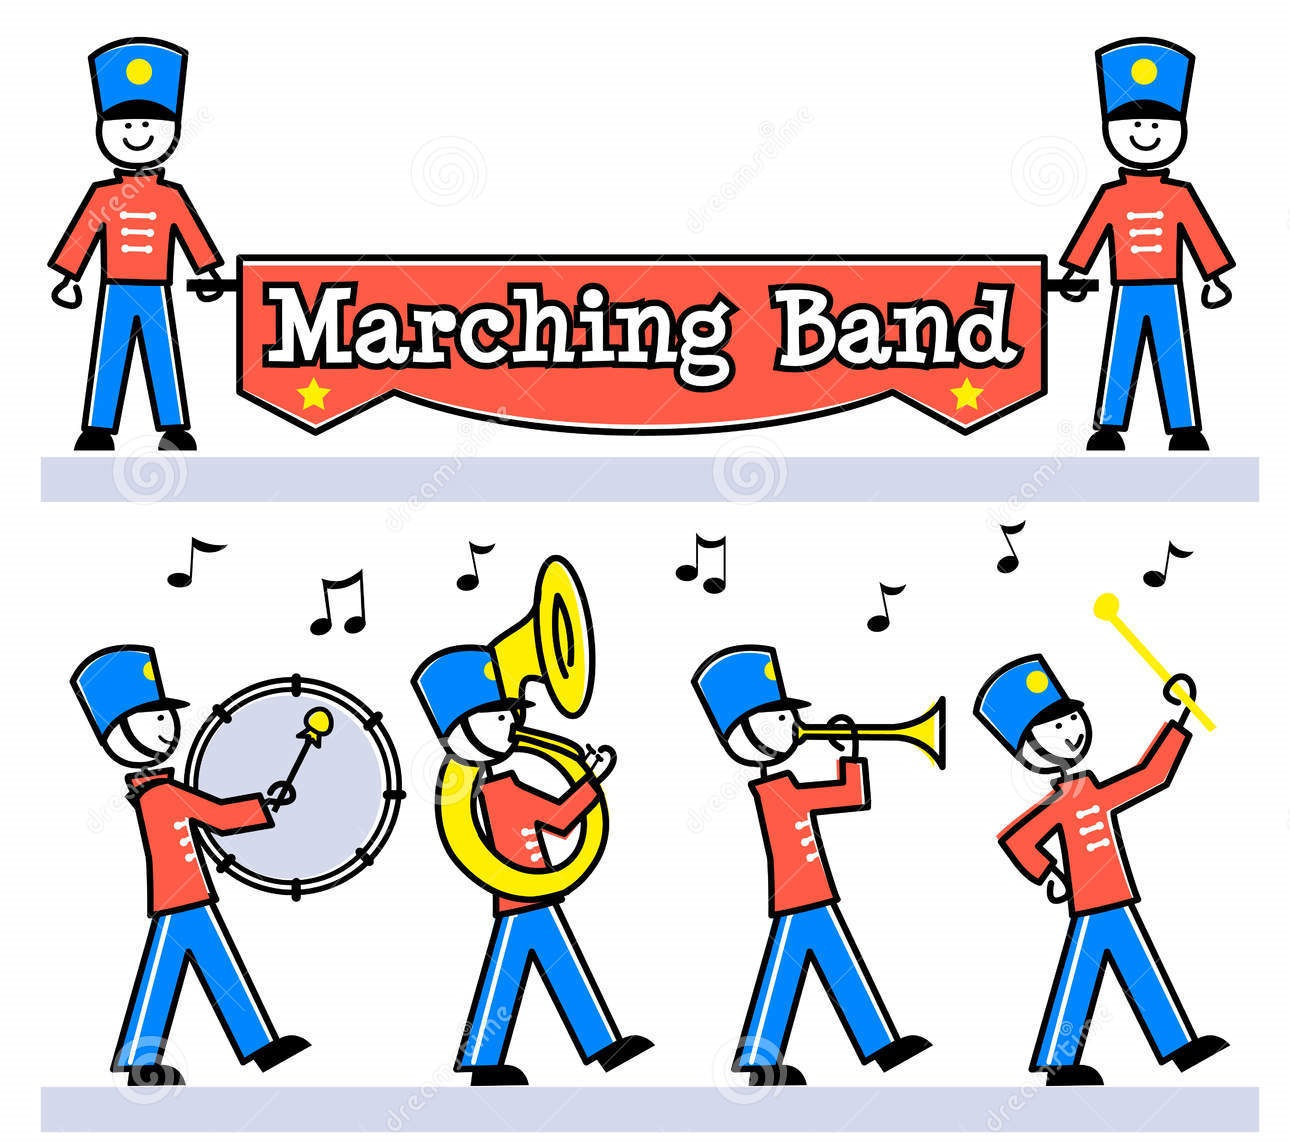 MARCHING BAND OSIS SMA NEGERI 1 RUMBIA